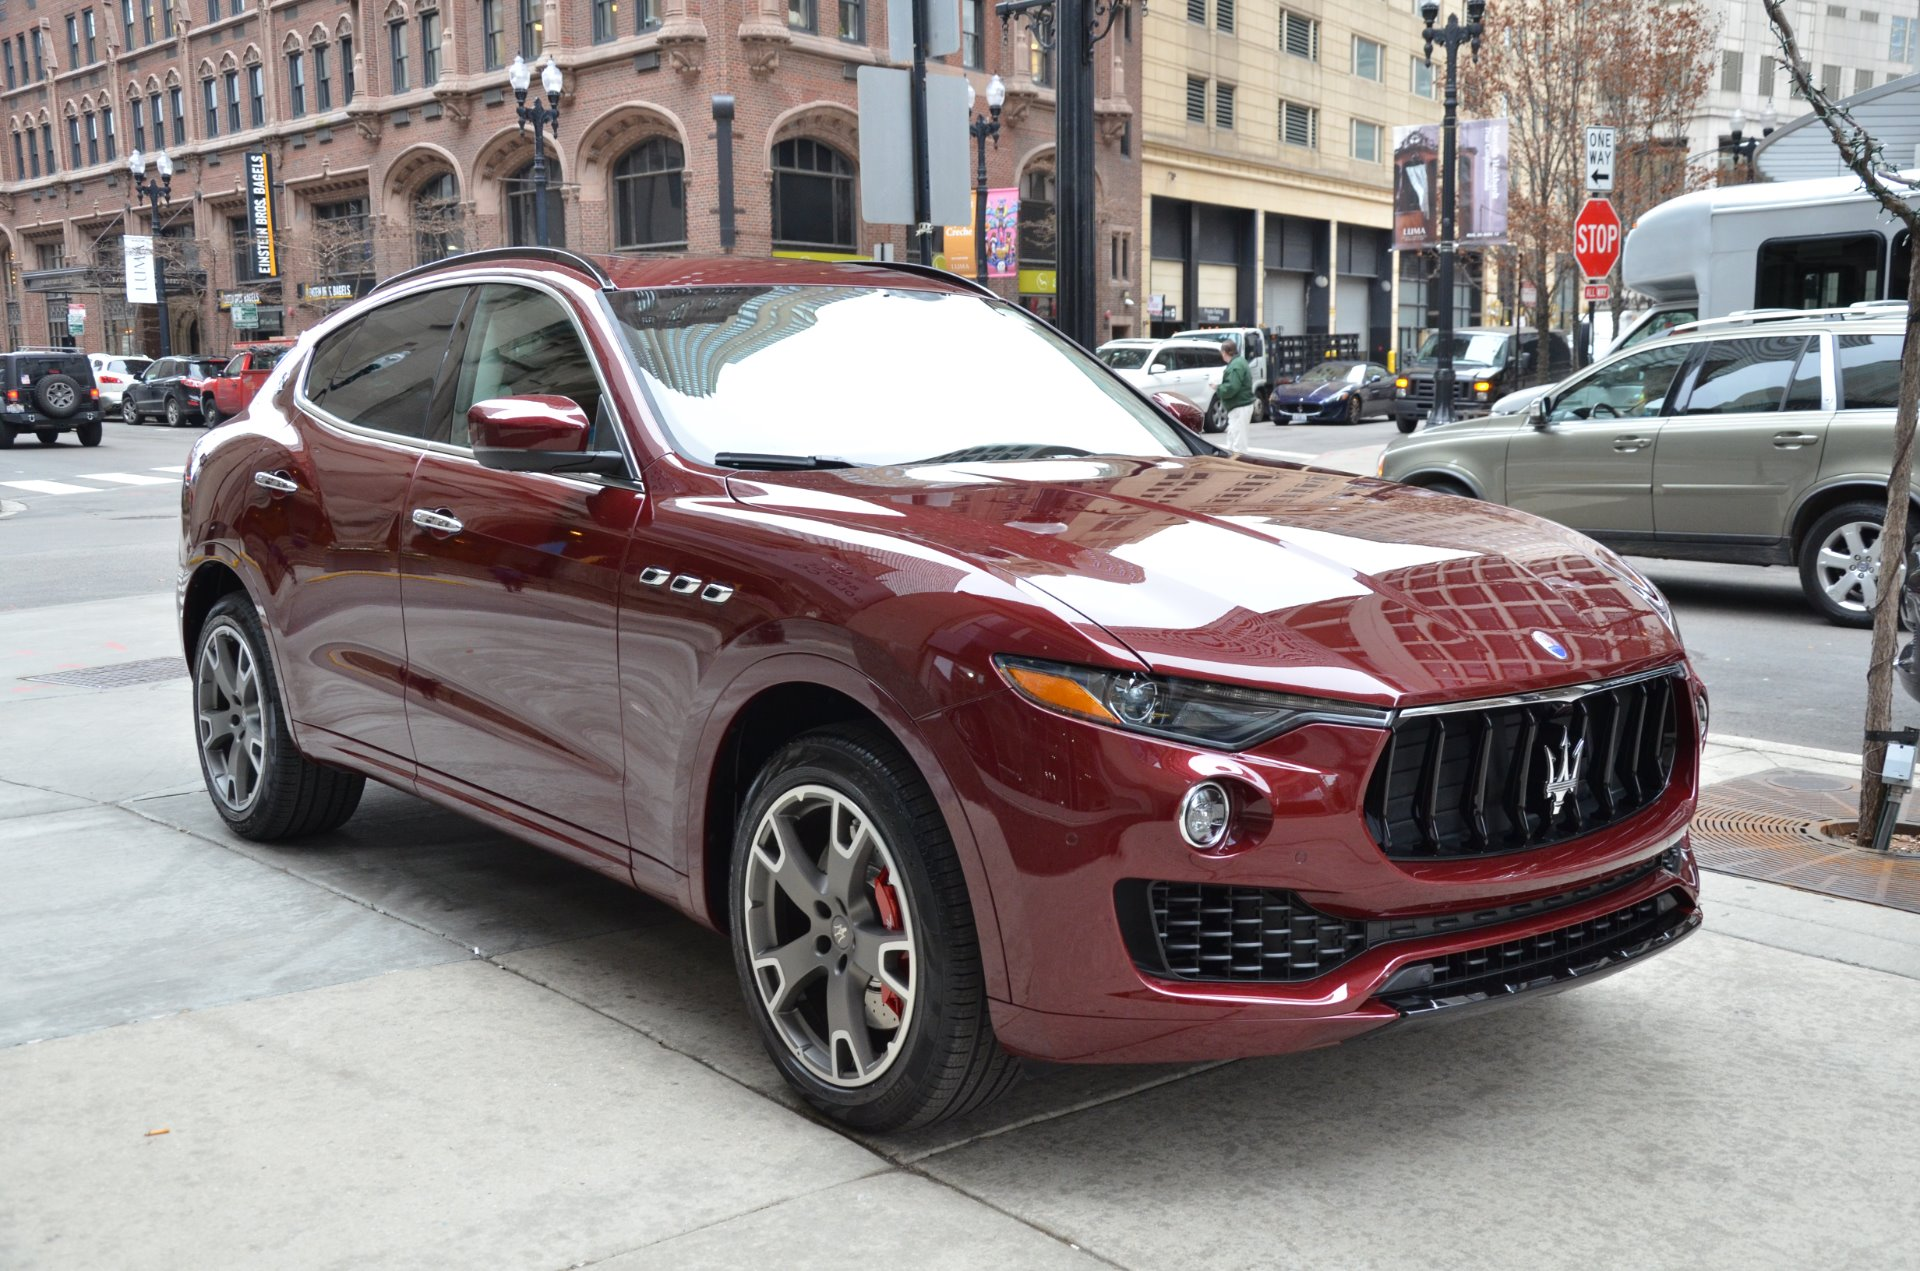 2017 maserati levante s s stock m567 s for sale near. Black Bedroom Furniture Sets. Home Design Ideas